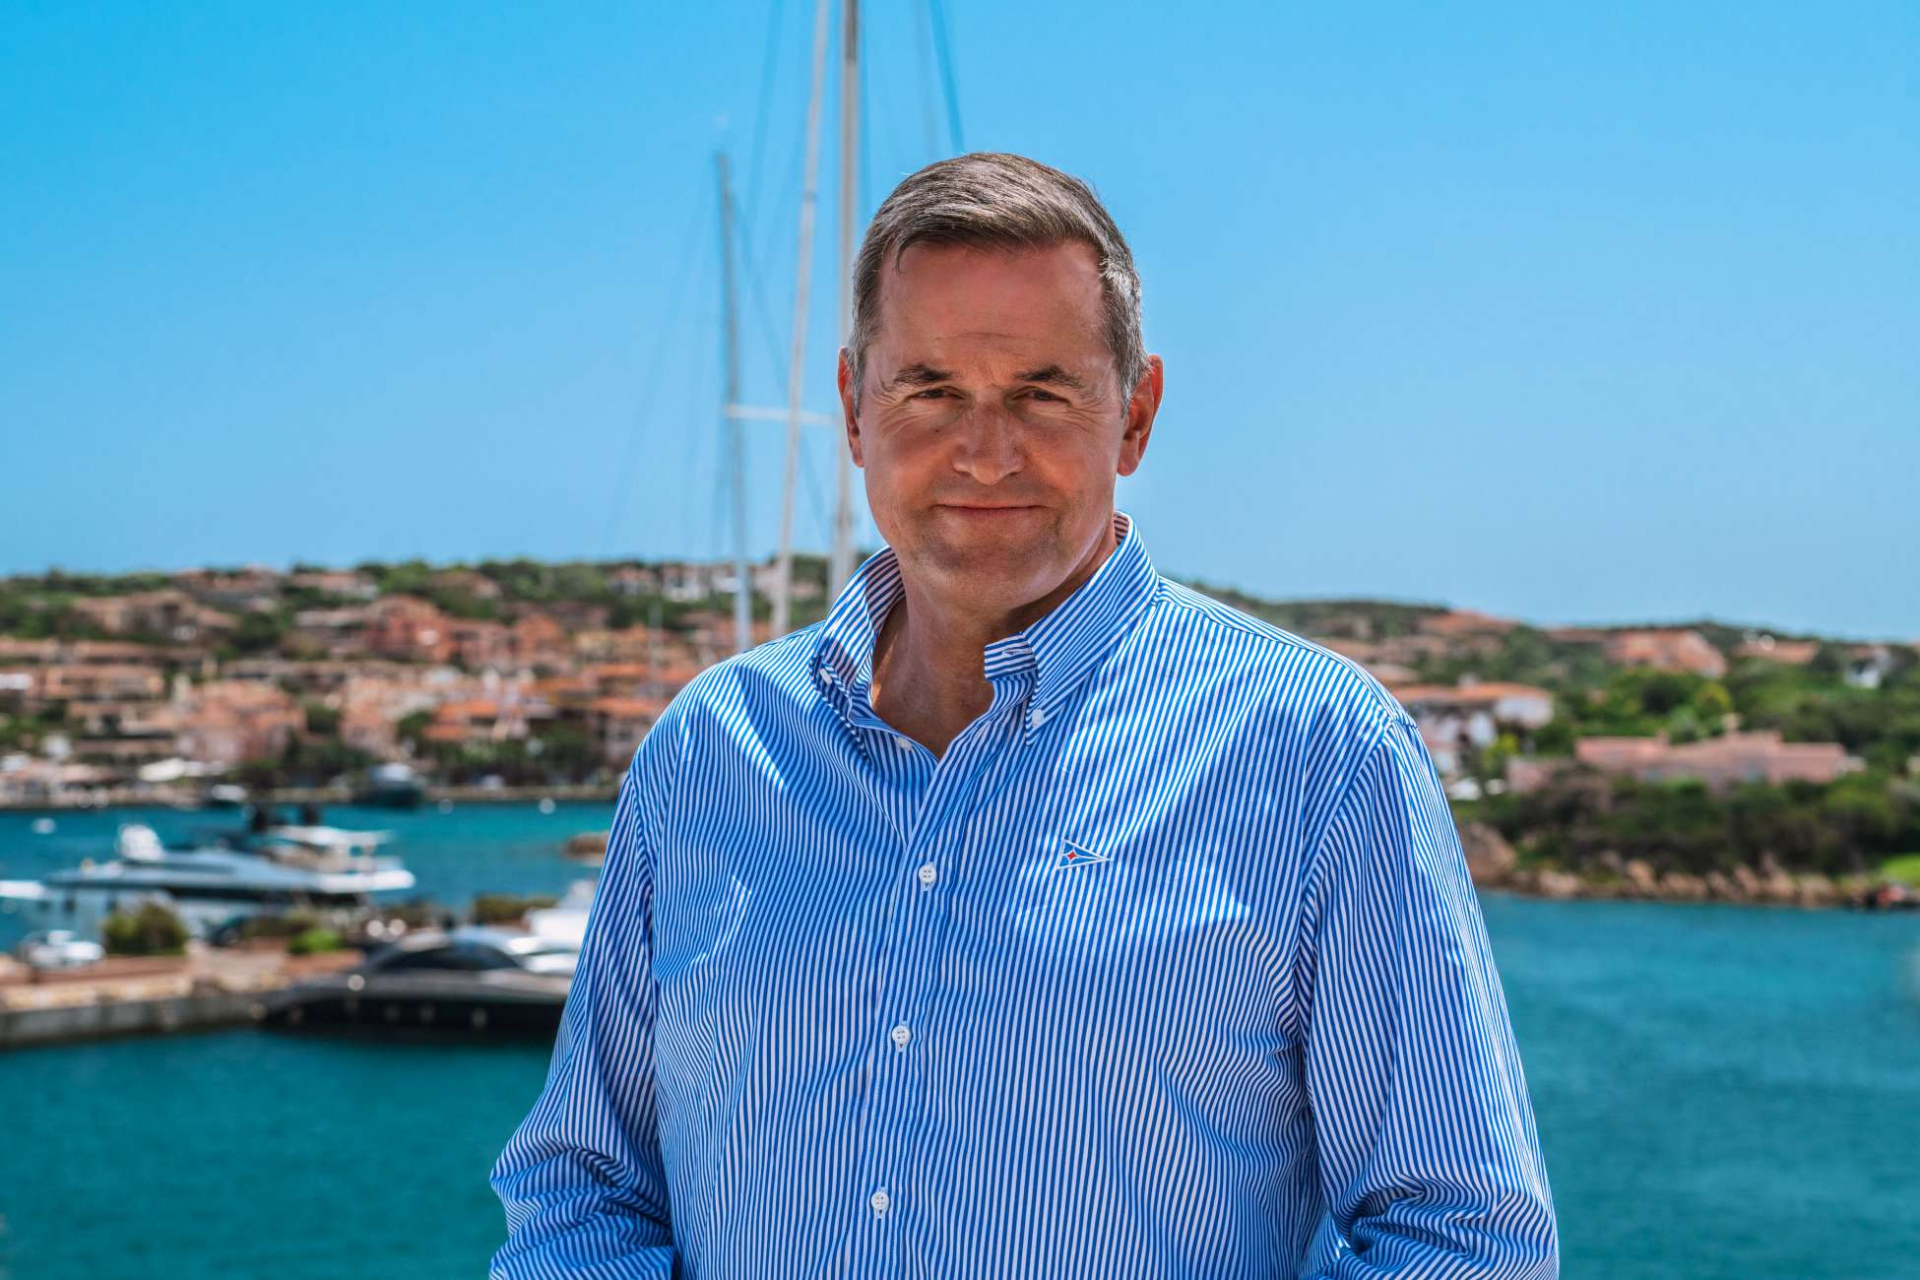 MICHAEL ILLBRUCK THE NEW COMMODORE OF THE YACHT CLUB COSTA SMERALDA - NEWS - Yacht Club Costa Smeralda